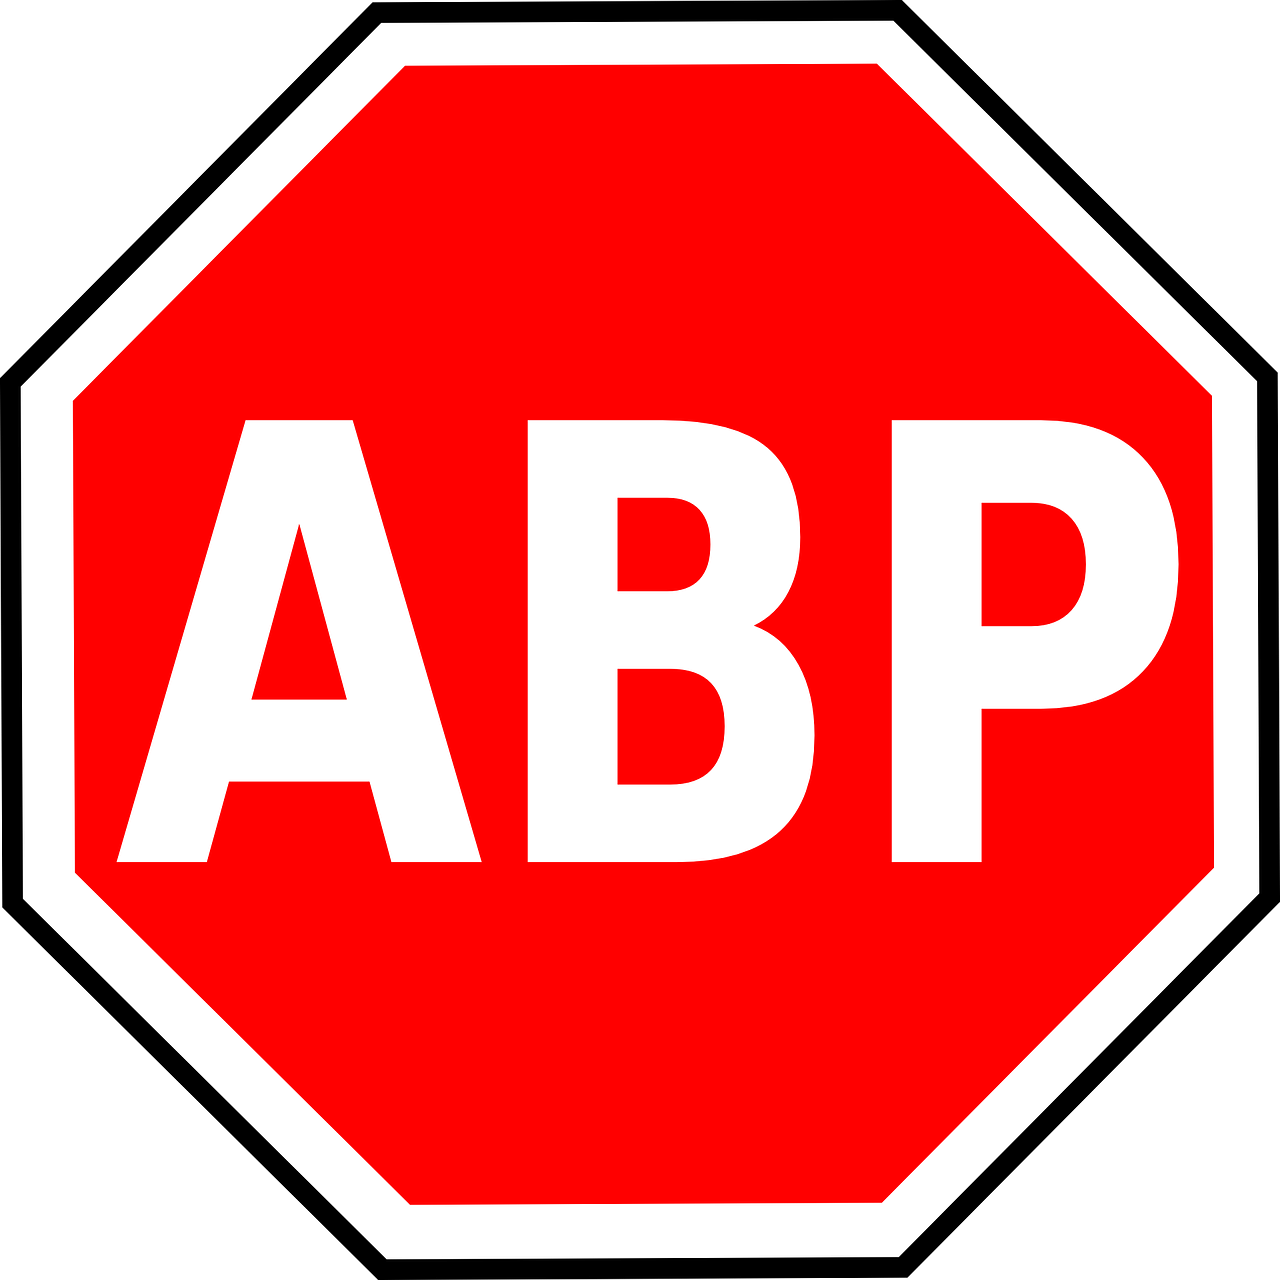 adblock plus logo octagon free photo